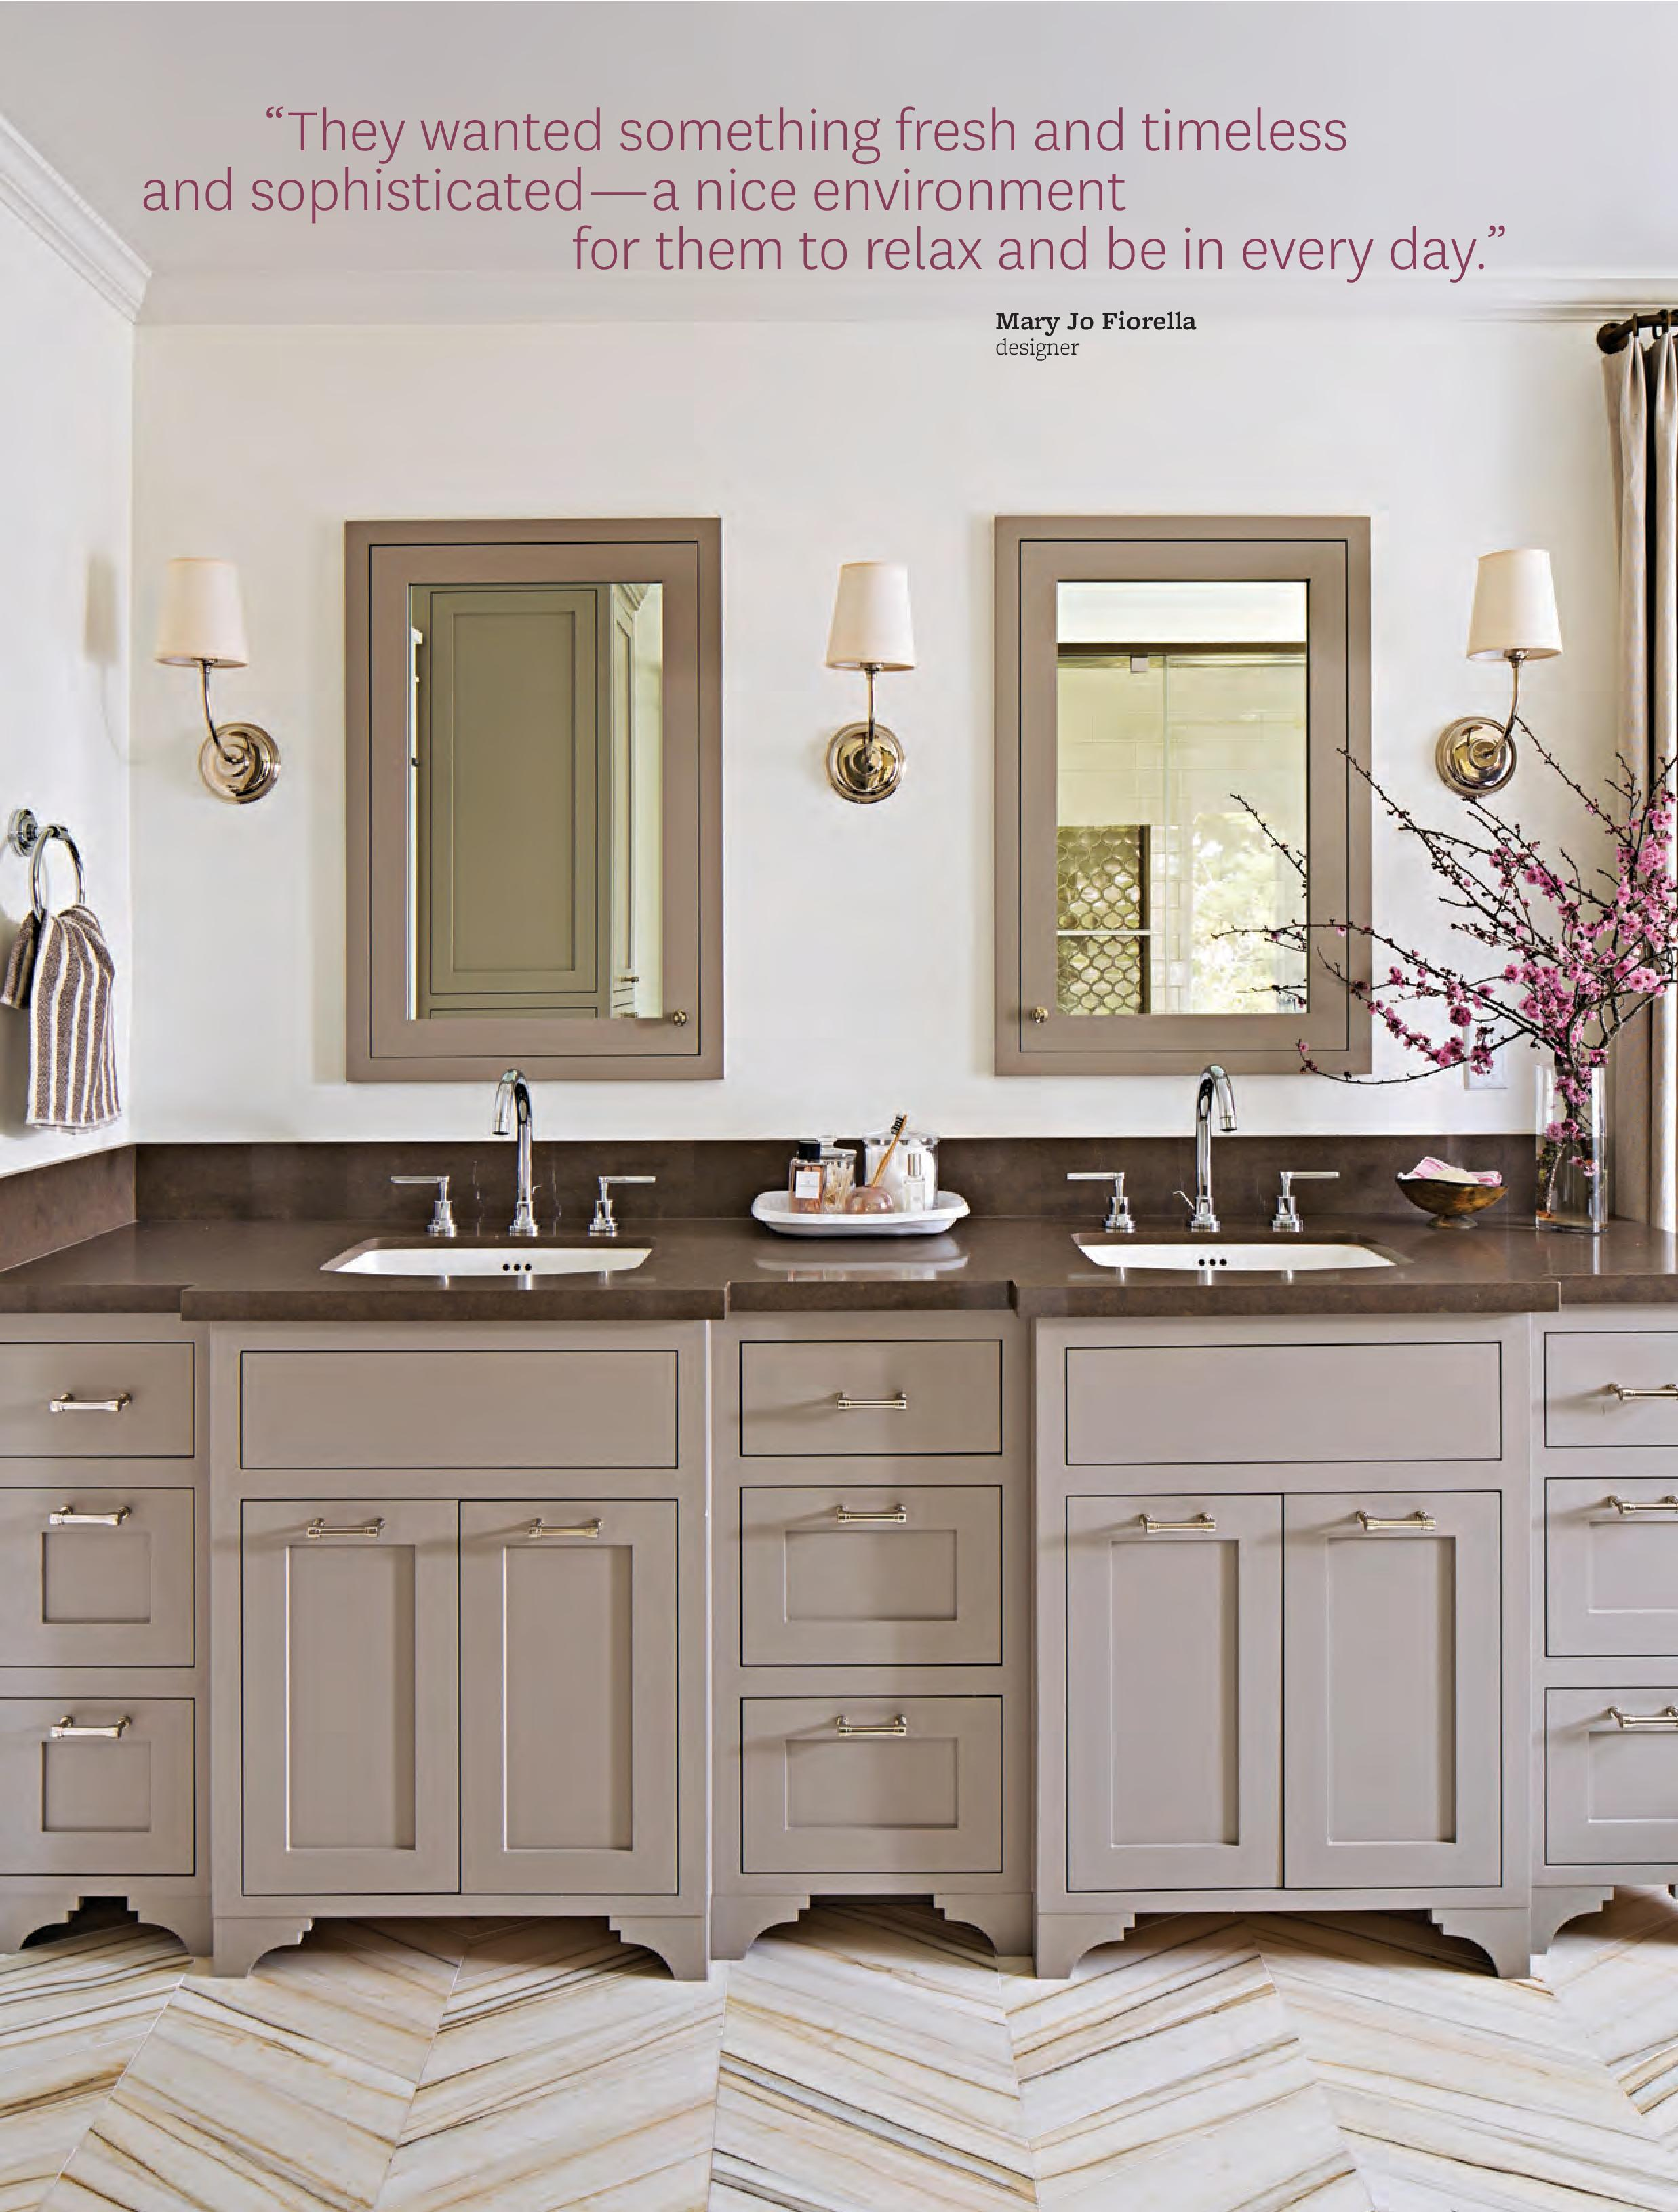 1-press_Beautiful_Kitchens_and_Baths_-_Summer_2016-page-005